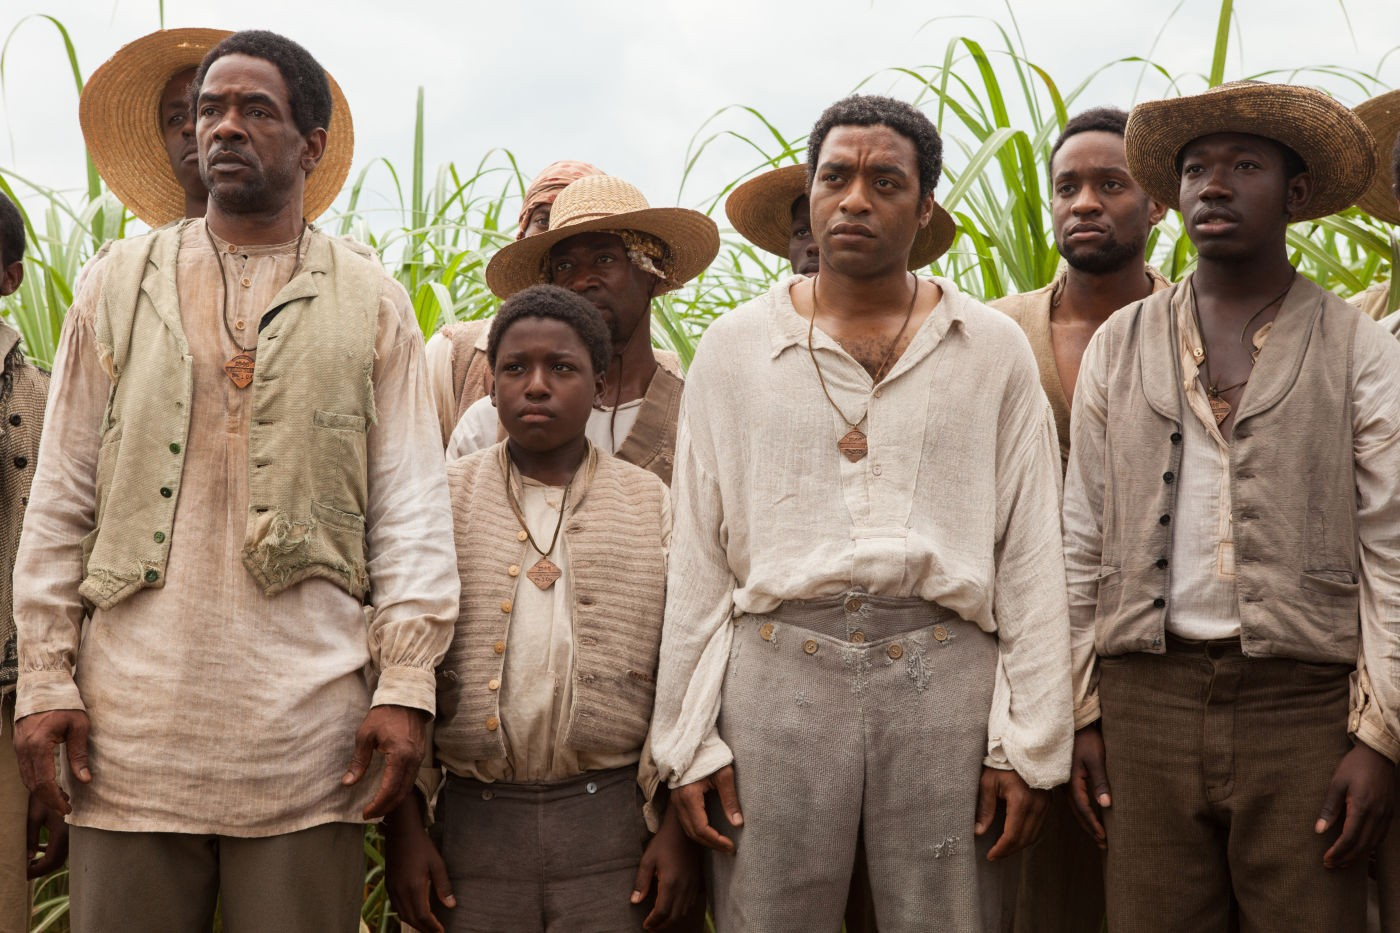 12 years a slave; the landmark film of the century so far?